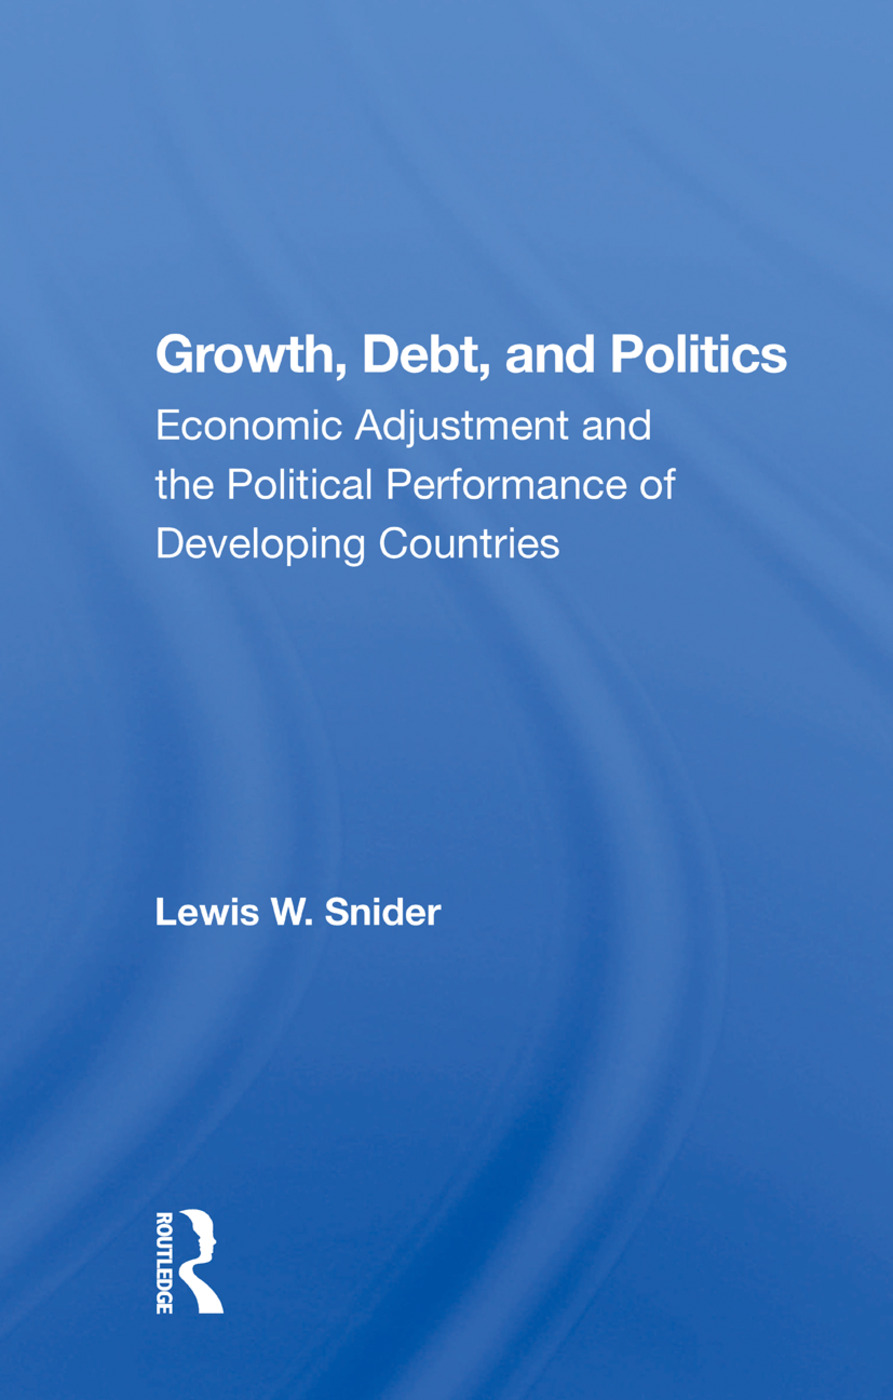 Growth, Debt, And Politics: Economic Adjustment And The Political Performance Of Developing Countries book cover